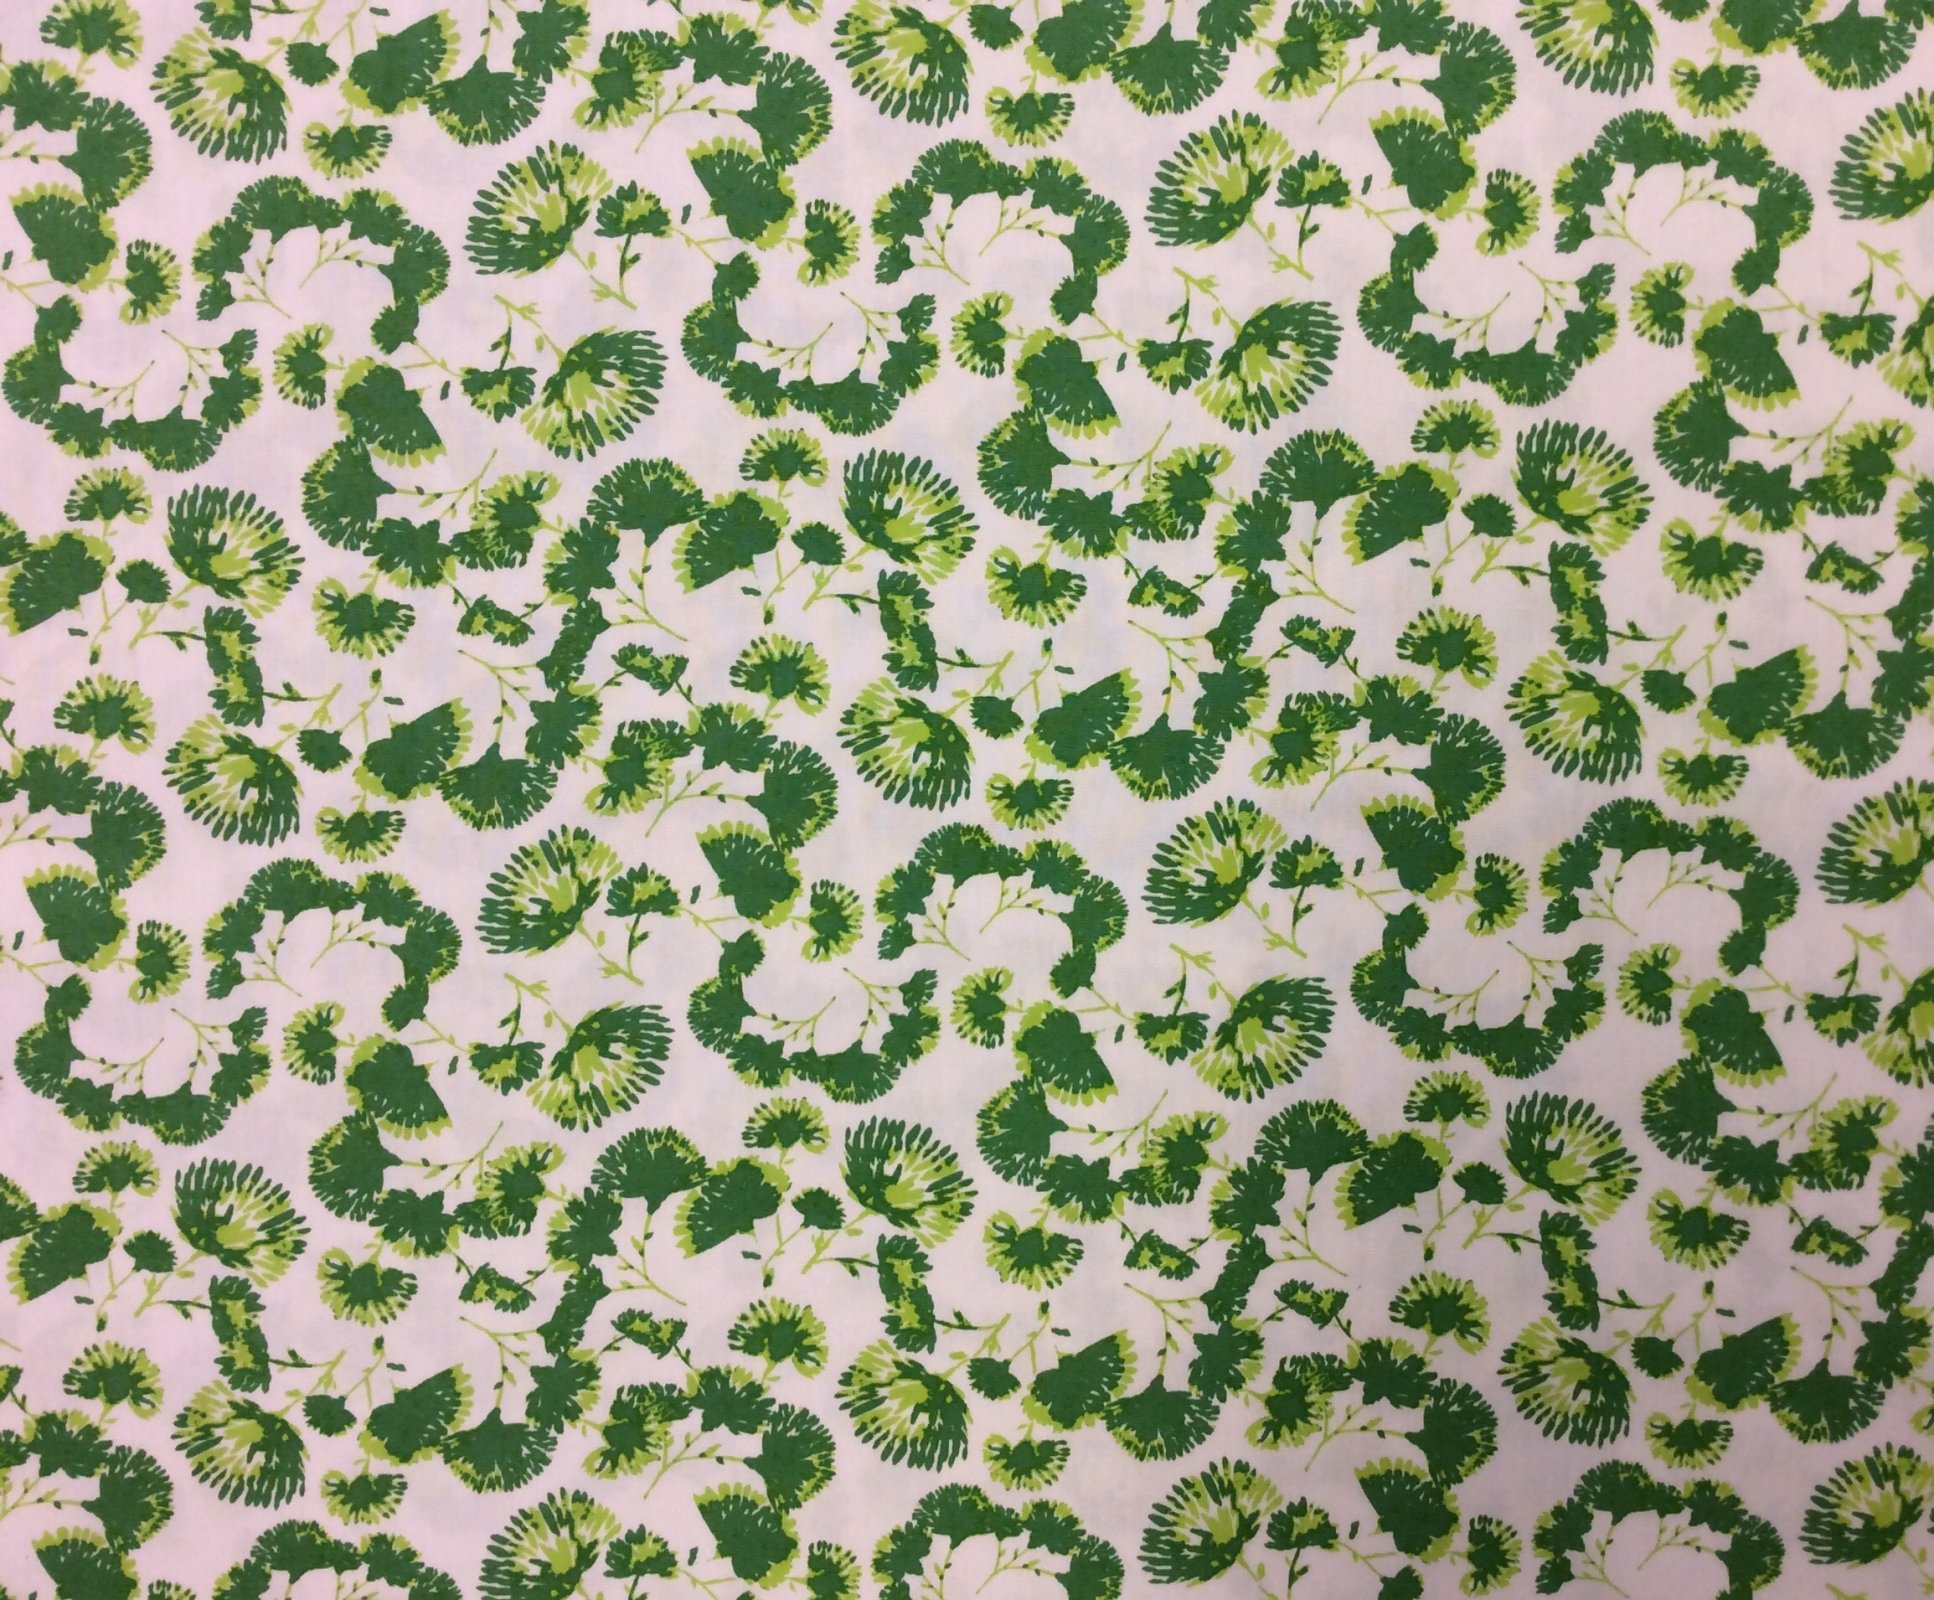 Green Leaves Art Gallery Soft Beautiful Cotton Quilt Fabric AR59